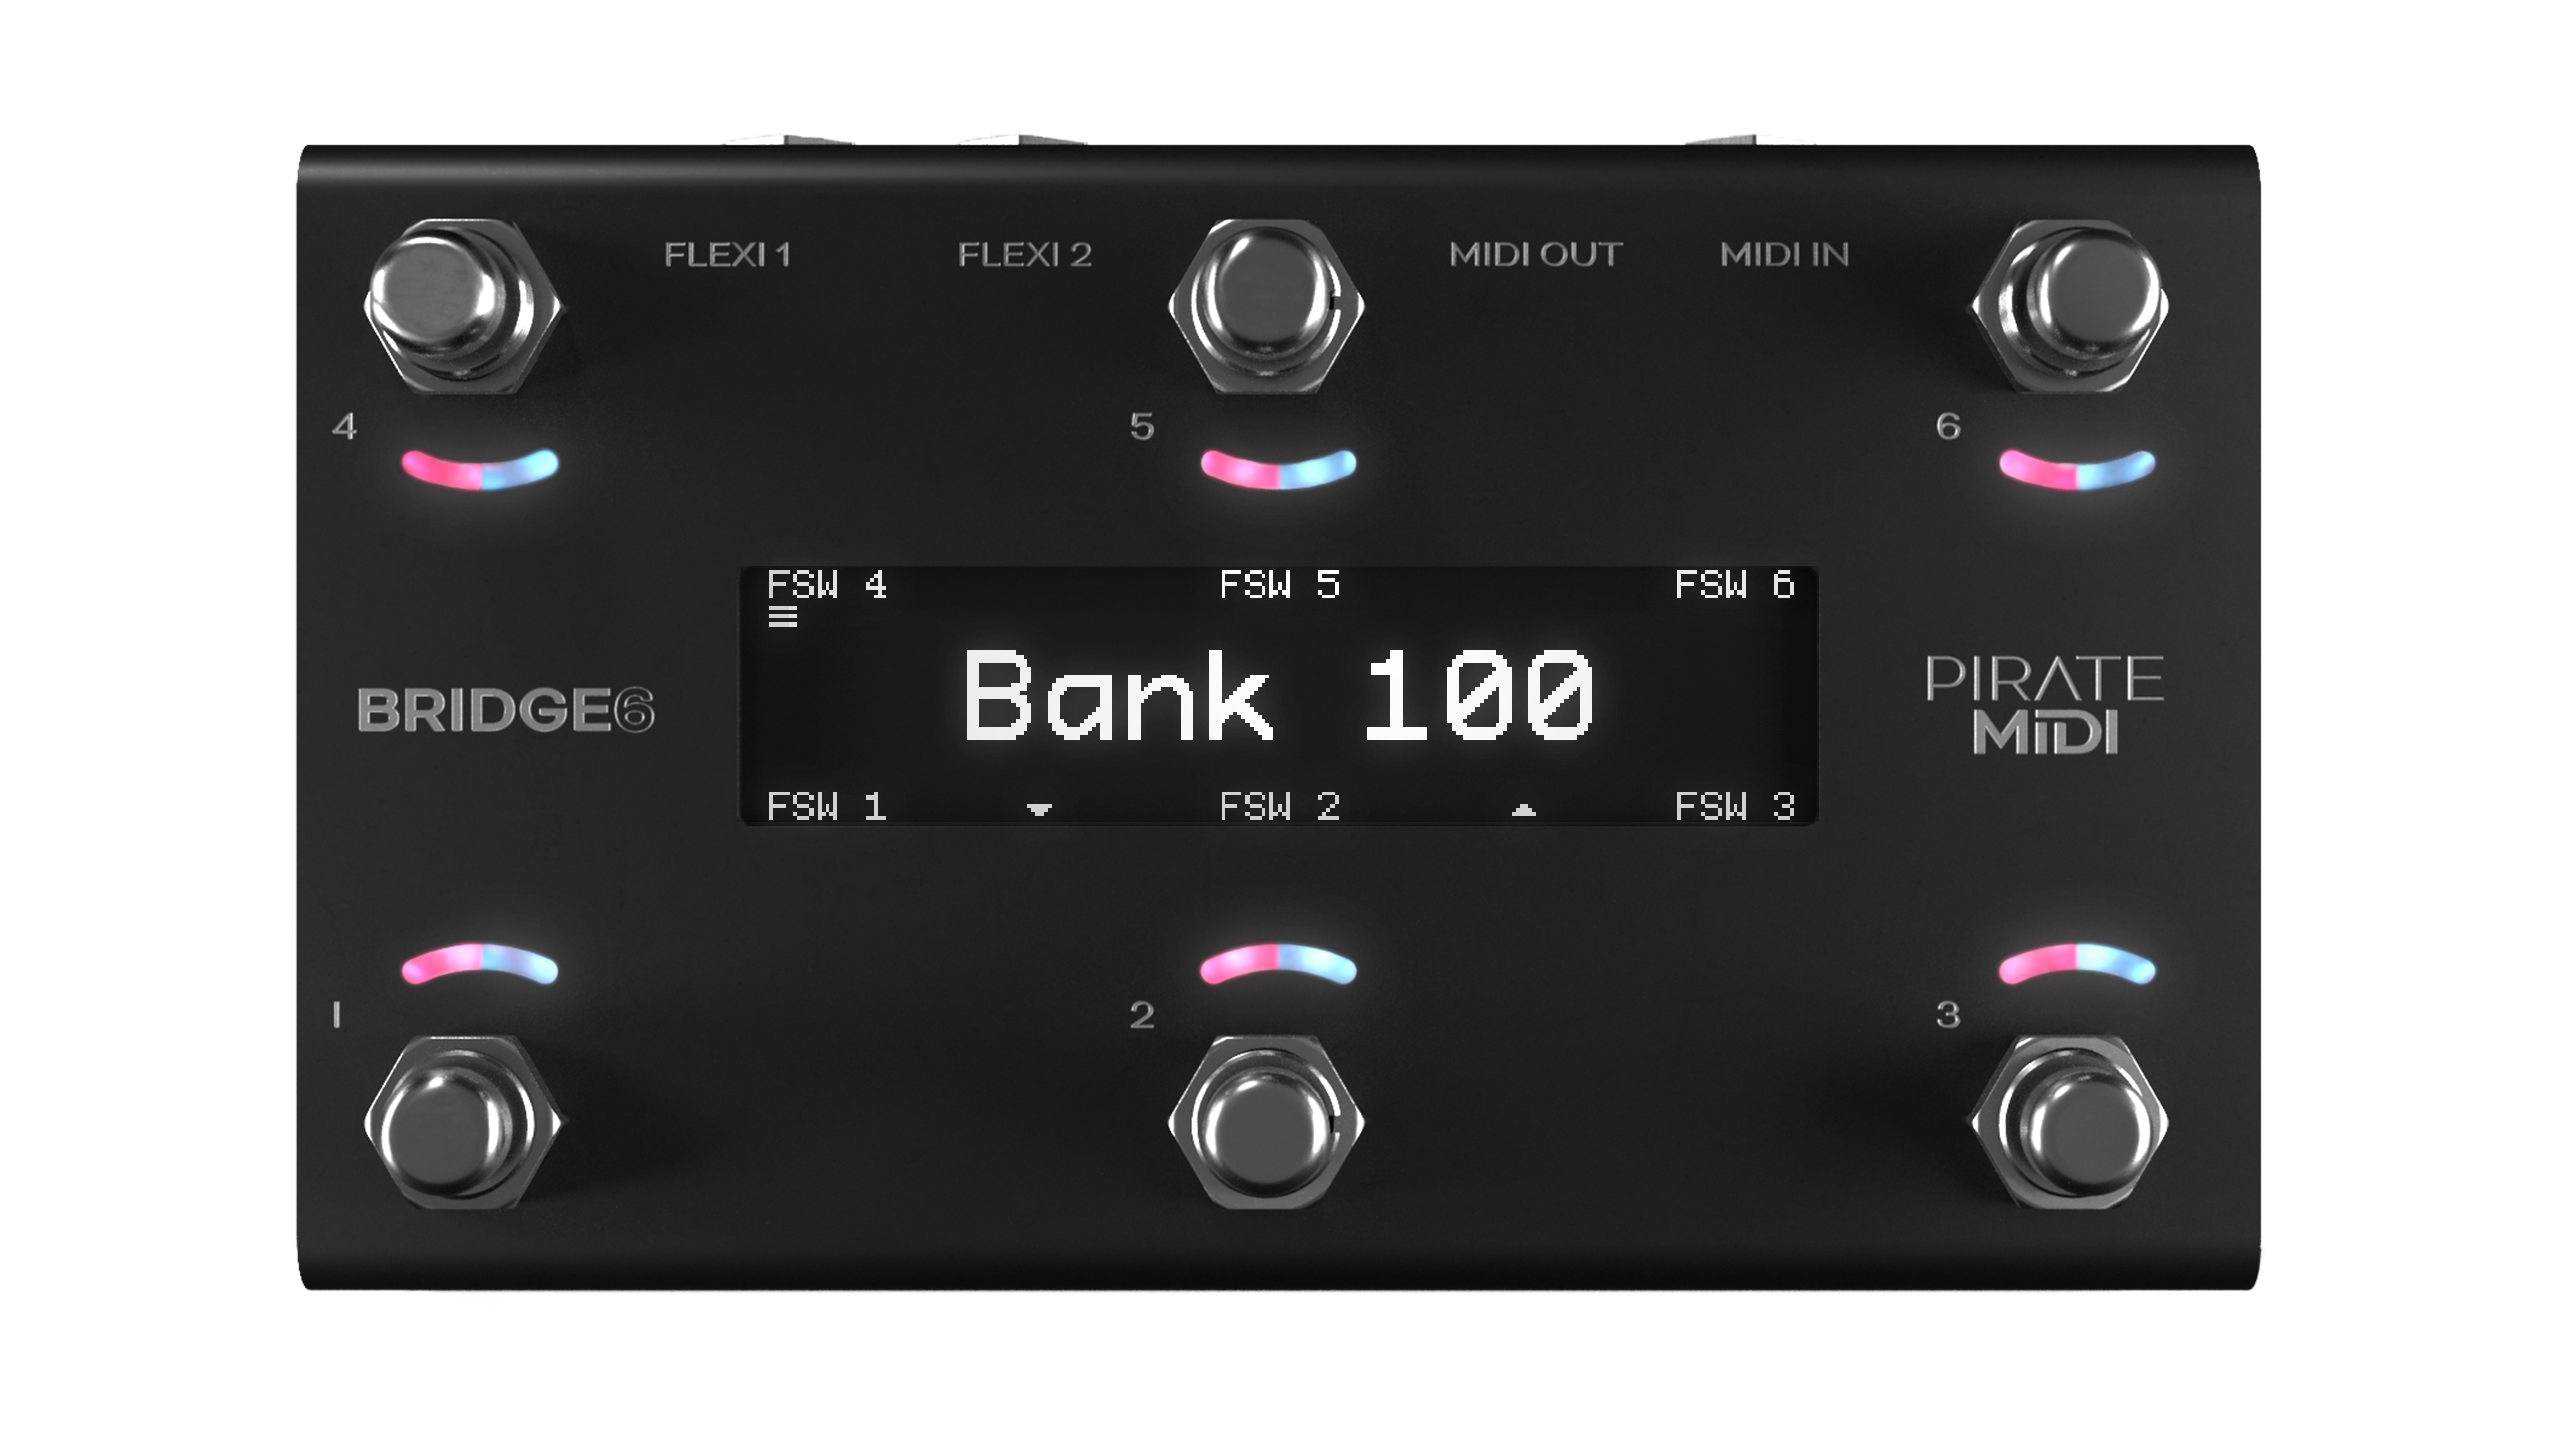 """Bridge6 Pedal with All LEDs on and Screen showing """"Bank 100"""""""